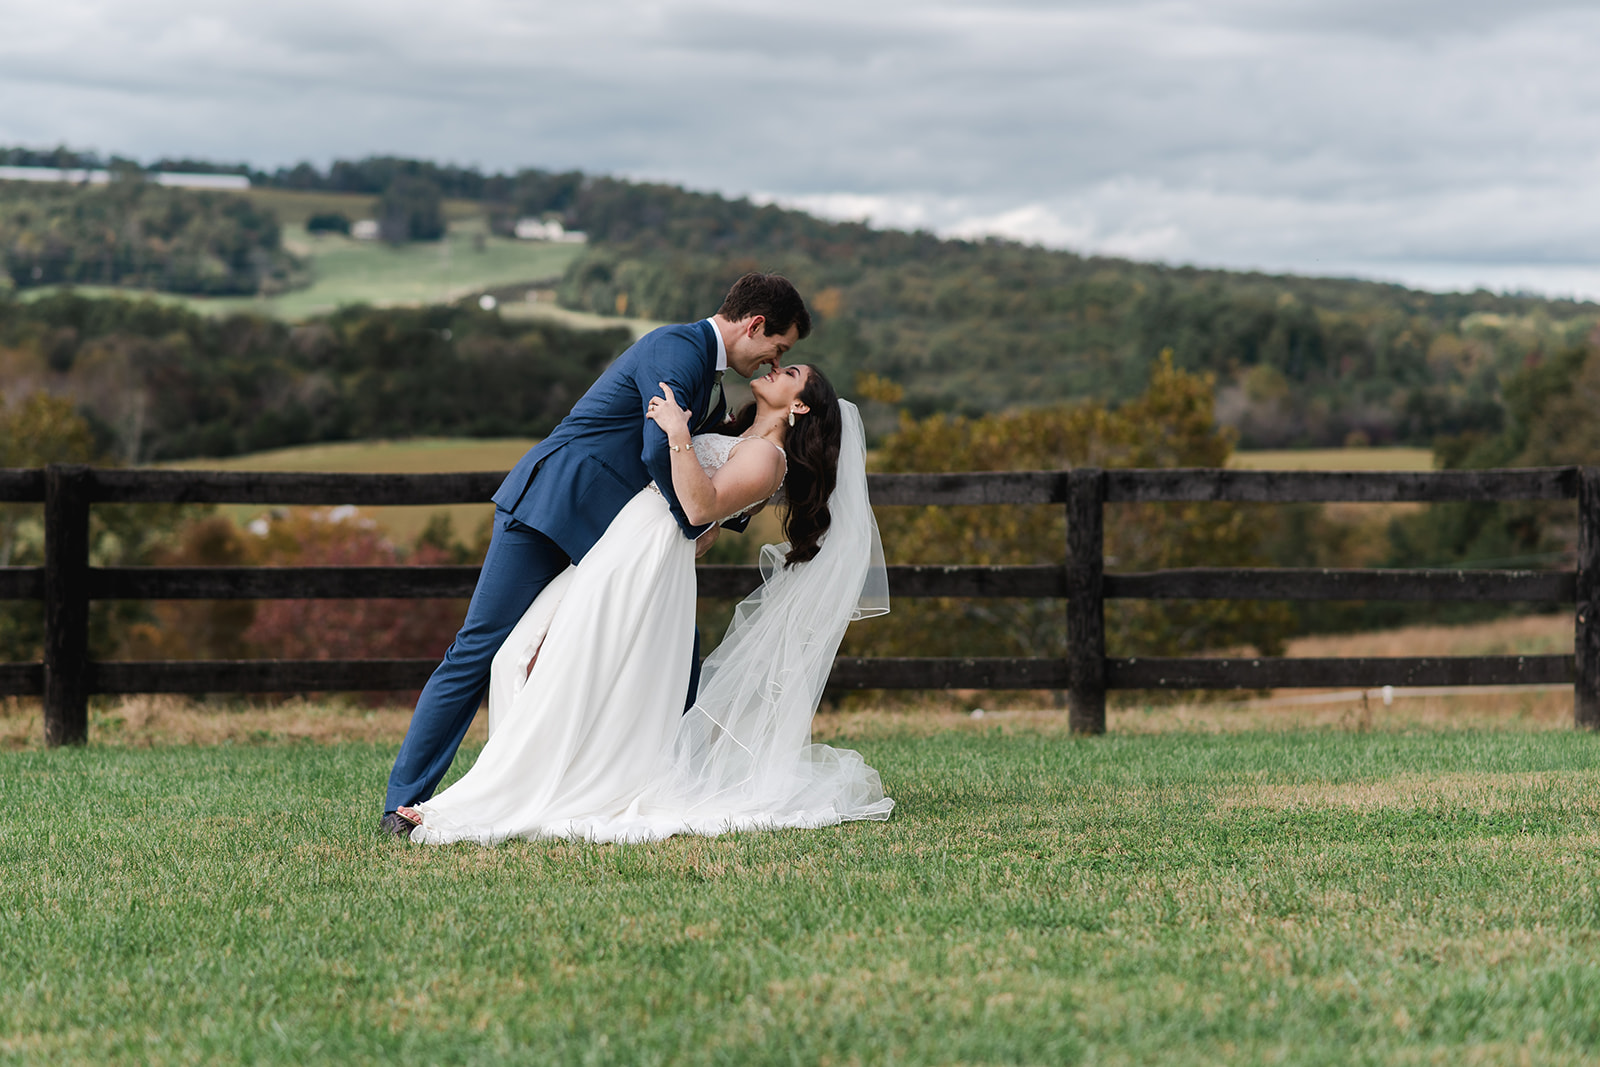 Sarah and Taylor 3 Cats Photo Blue Ridge Mountain Wedding Photographer 59059 copy